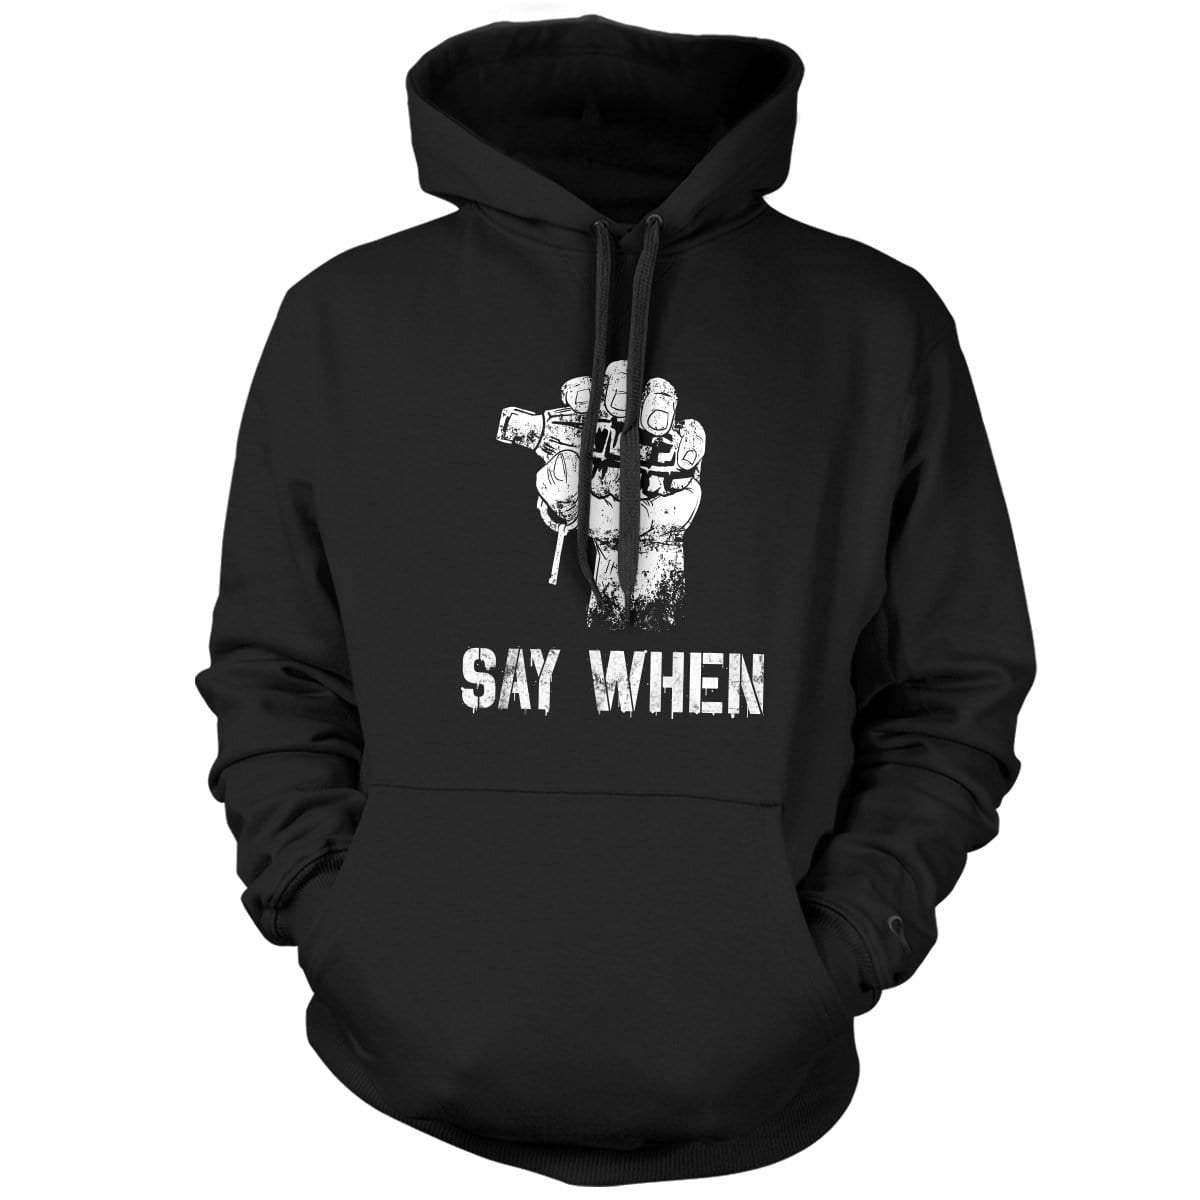 Say When Hoodie - Black - Hoodies - Pipe Hitters Union